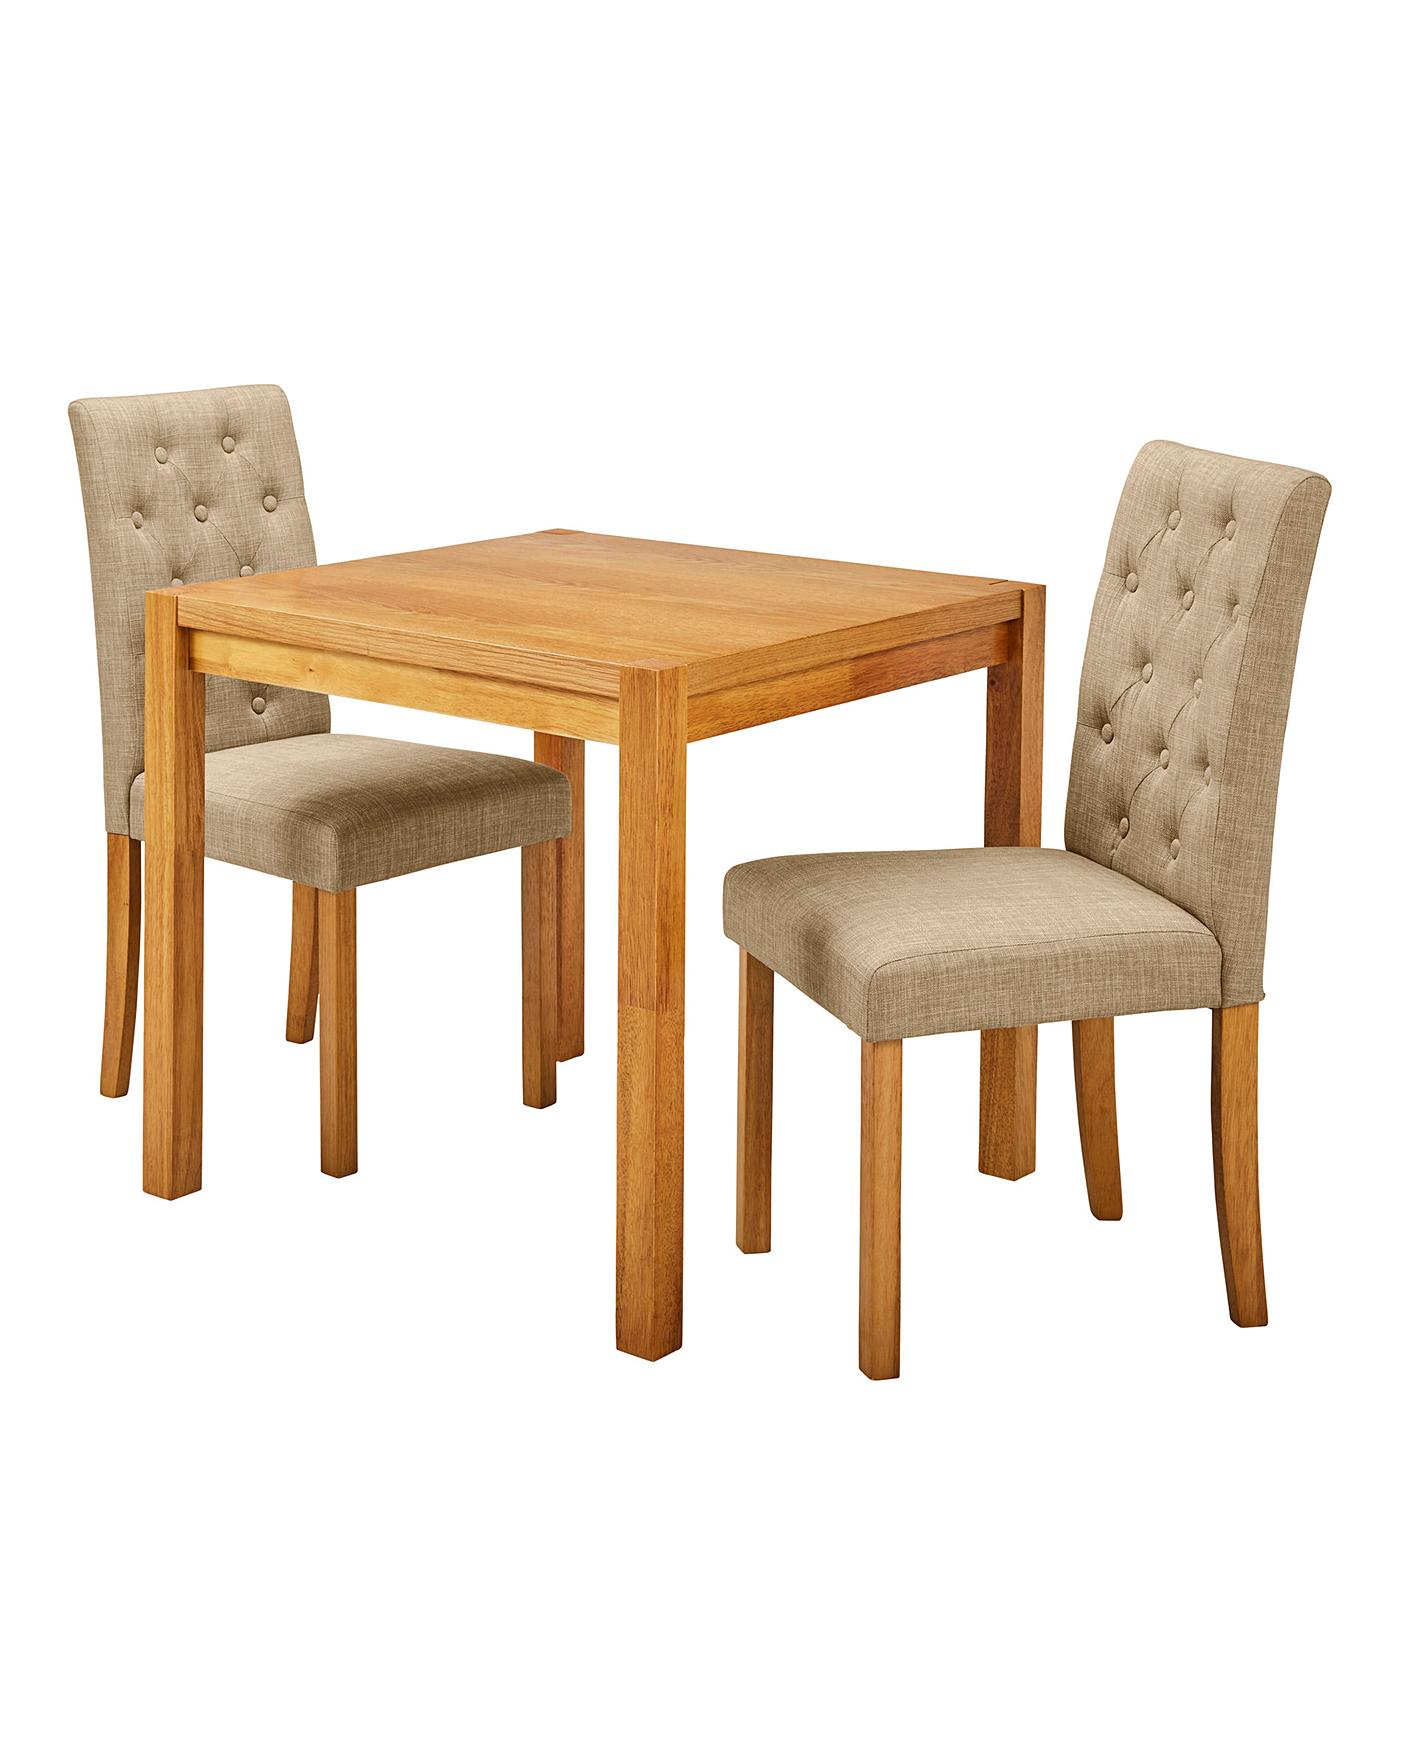 Magnificent Oakham Table 2 Grace Fabric Chairs Andrewgaddart Wooden Chair Designs For Living Room Andrewgaddartcom